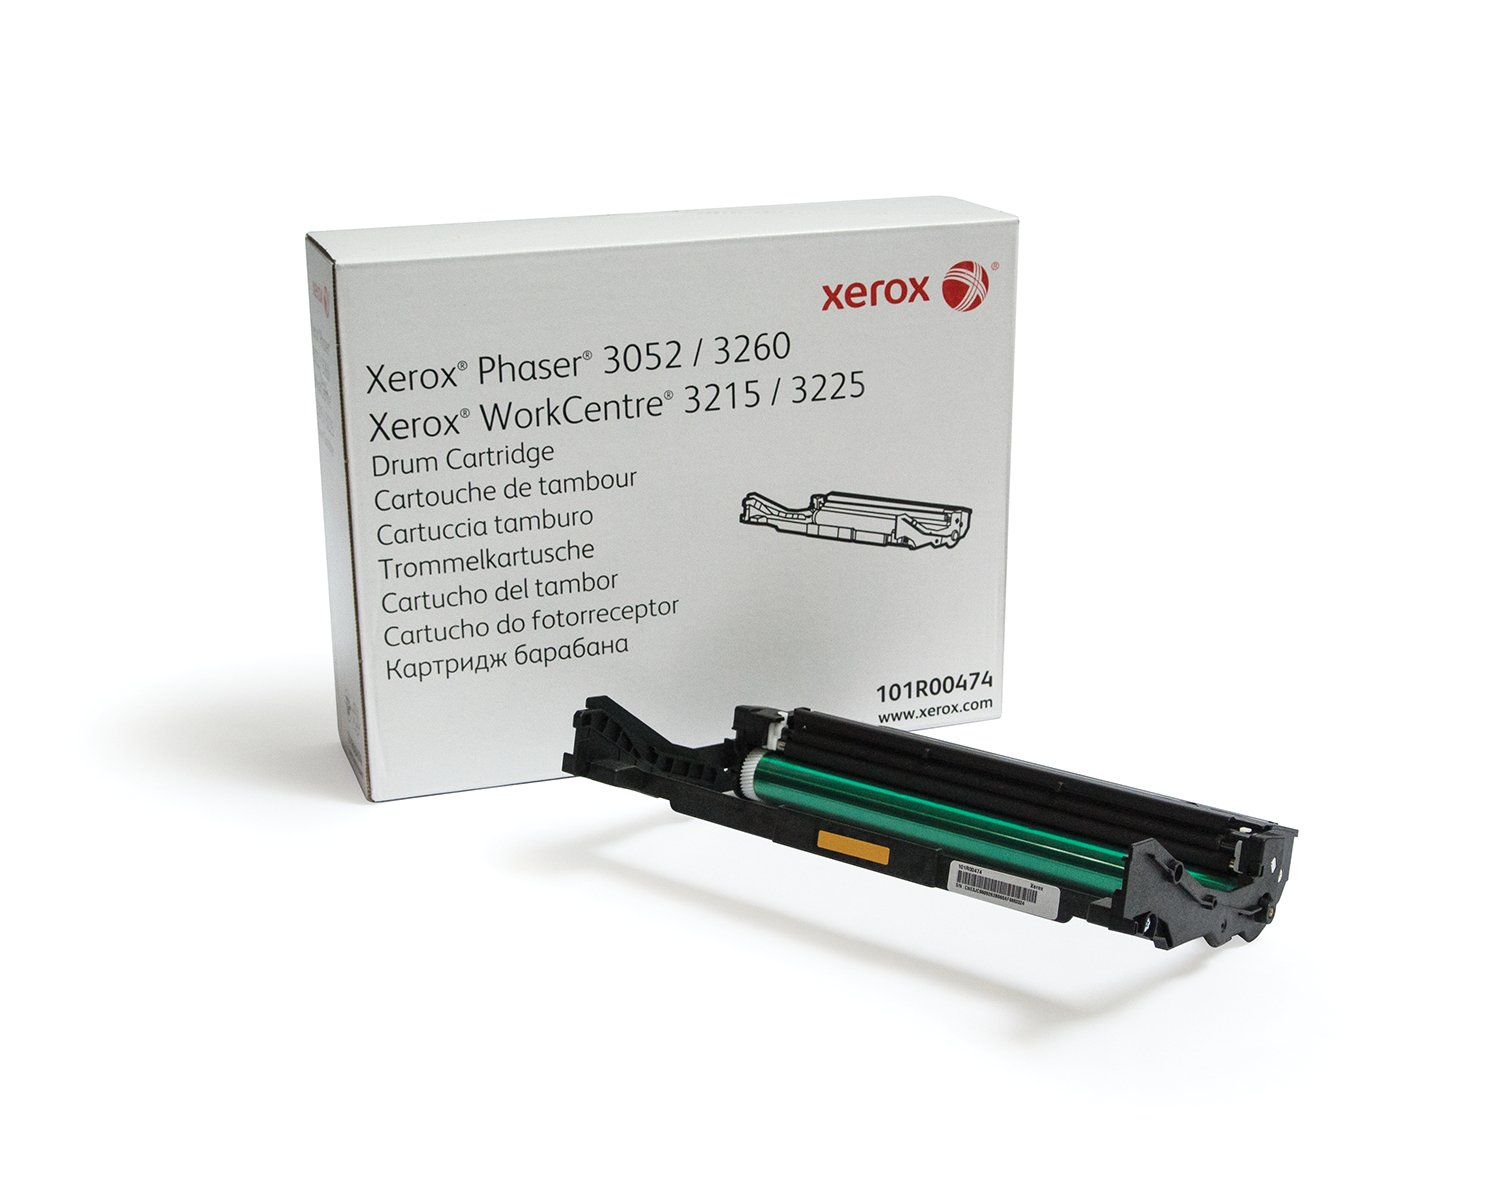 Xerox 101R00474 Drum Cartridge compatible with Phaser 3260 and WorkCentre 3215/3225